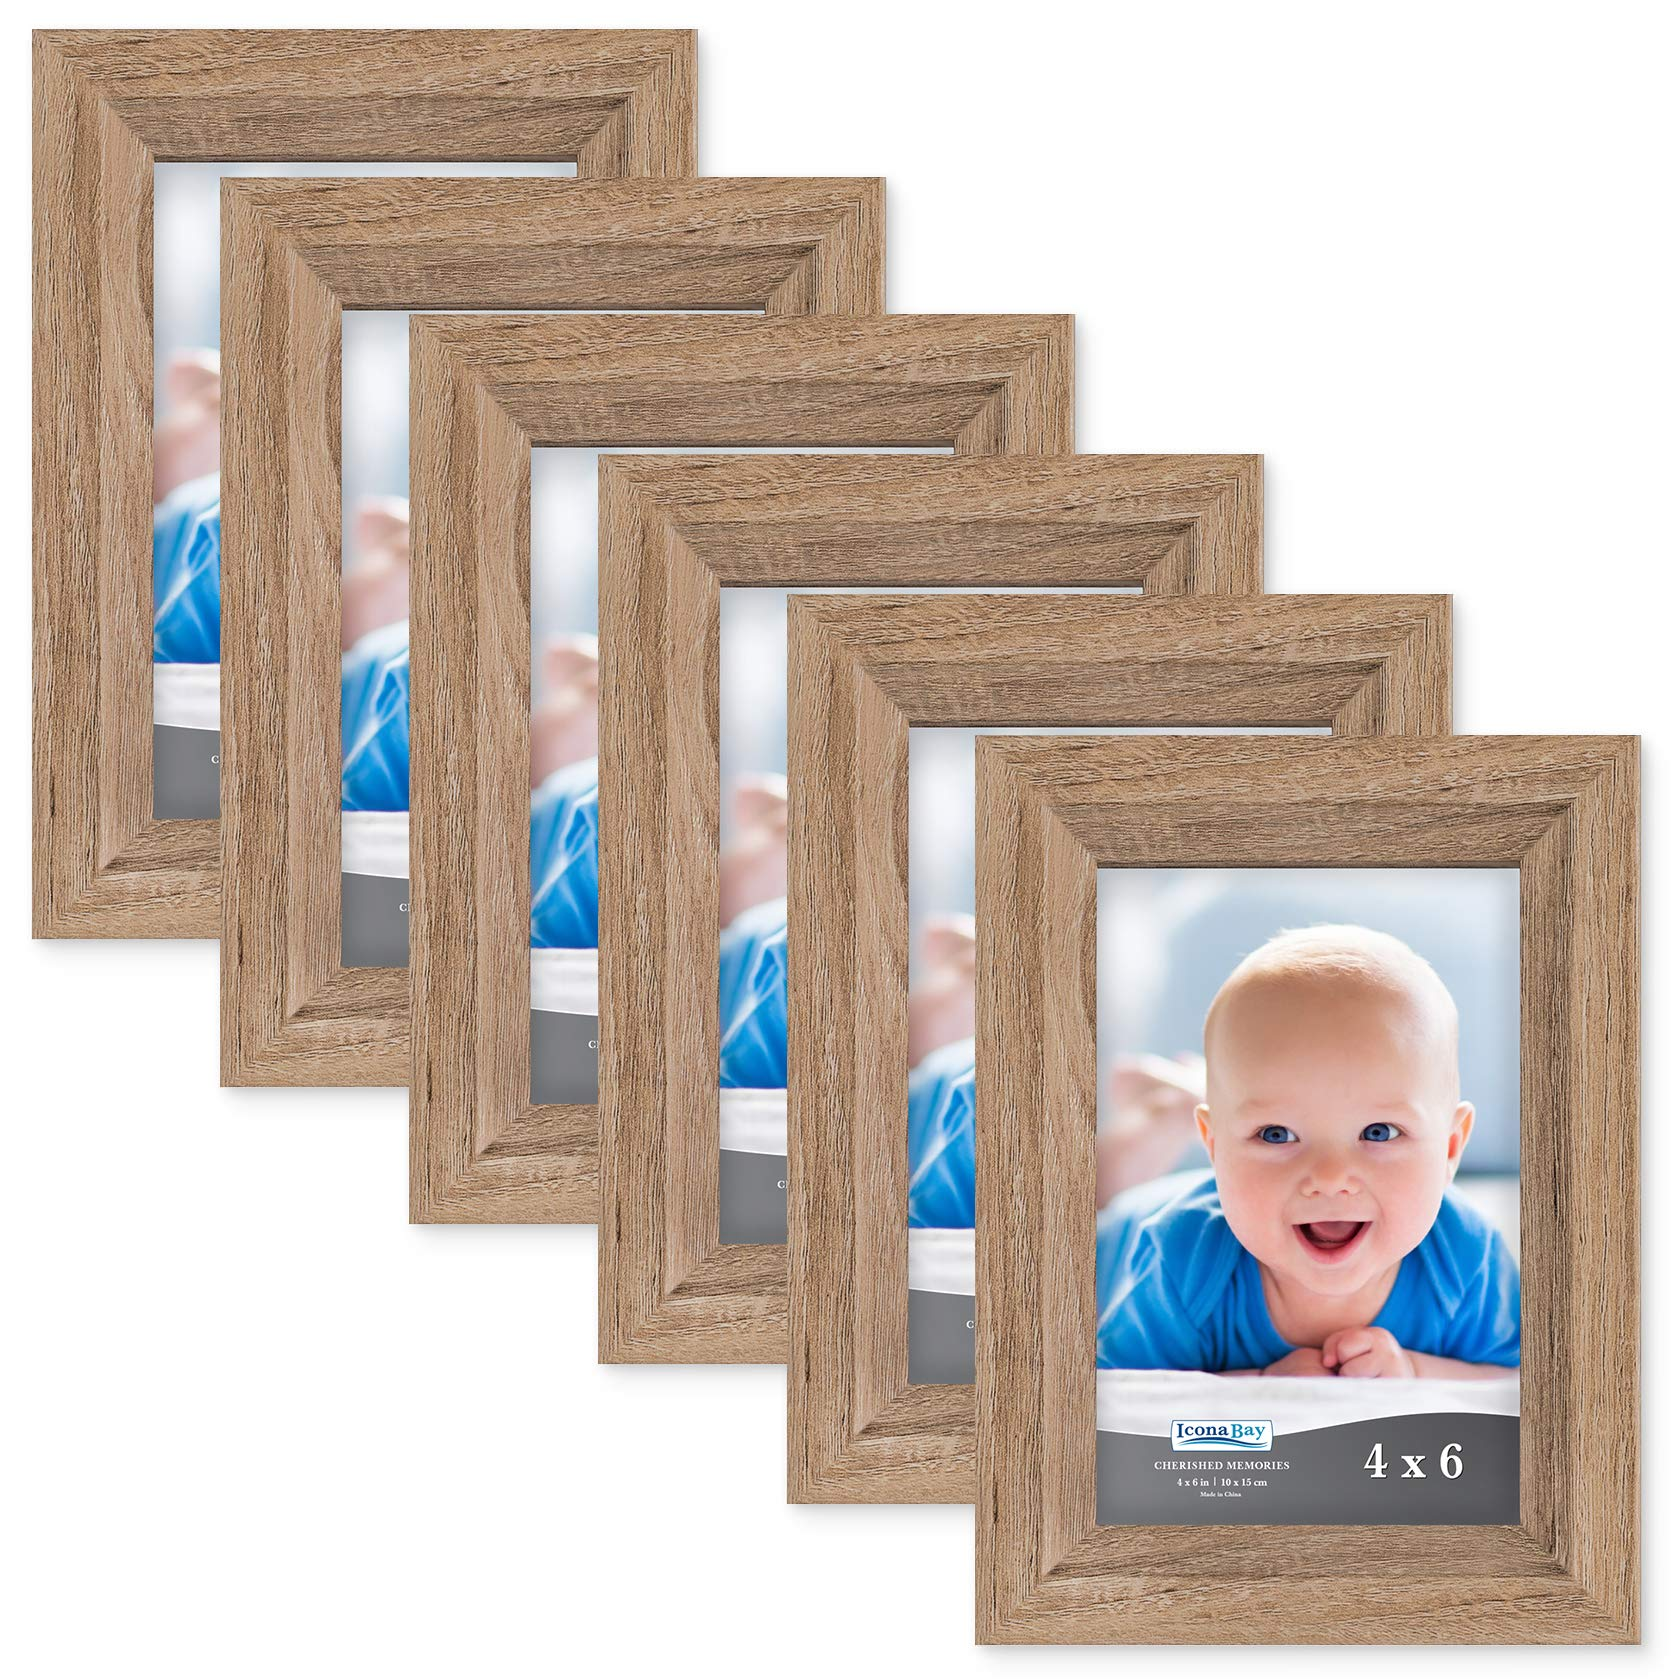 Icona Bay 4x6 Picture Frame (6 Pack, Dark Oak Wood Finish), Photo Frame 4 x 6, Composite Wood Frame for Walls or Tables, Set of 6 Cherished Memories Collection by Icona Bay